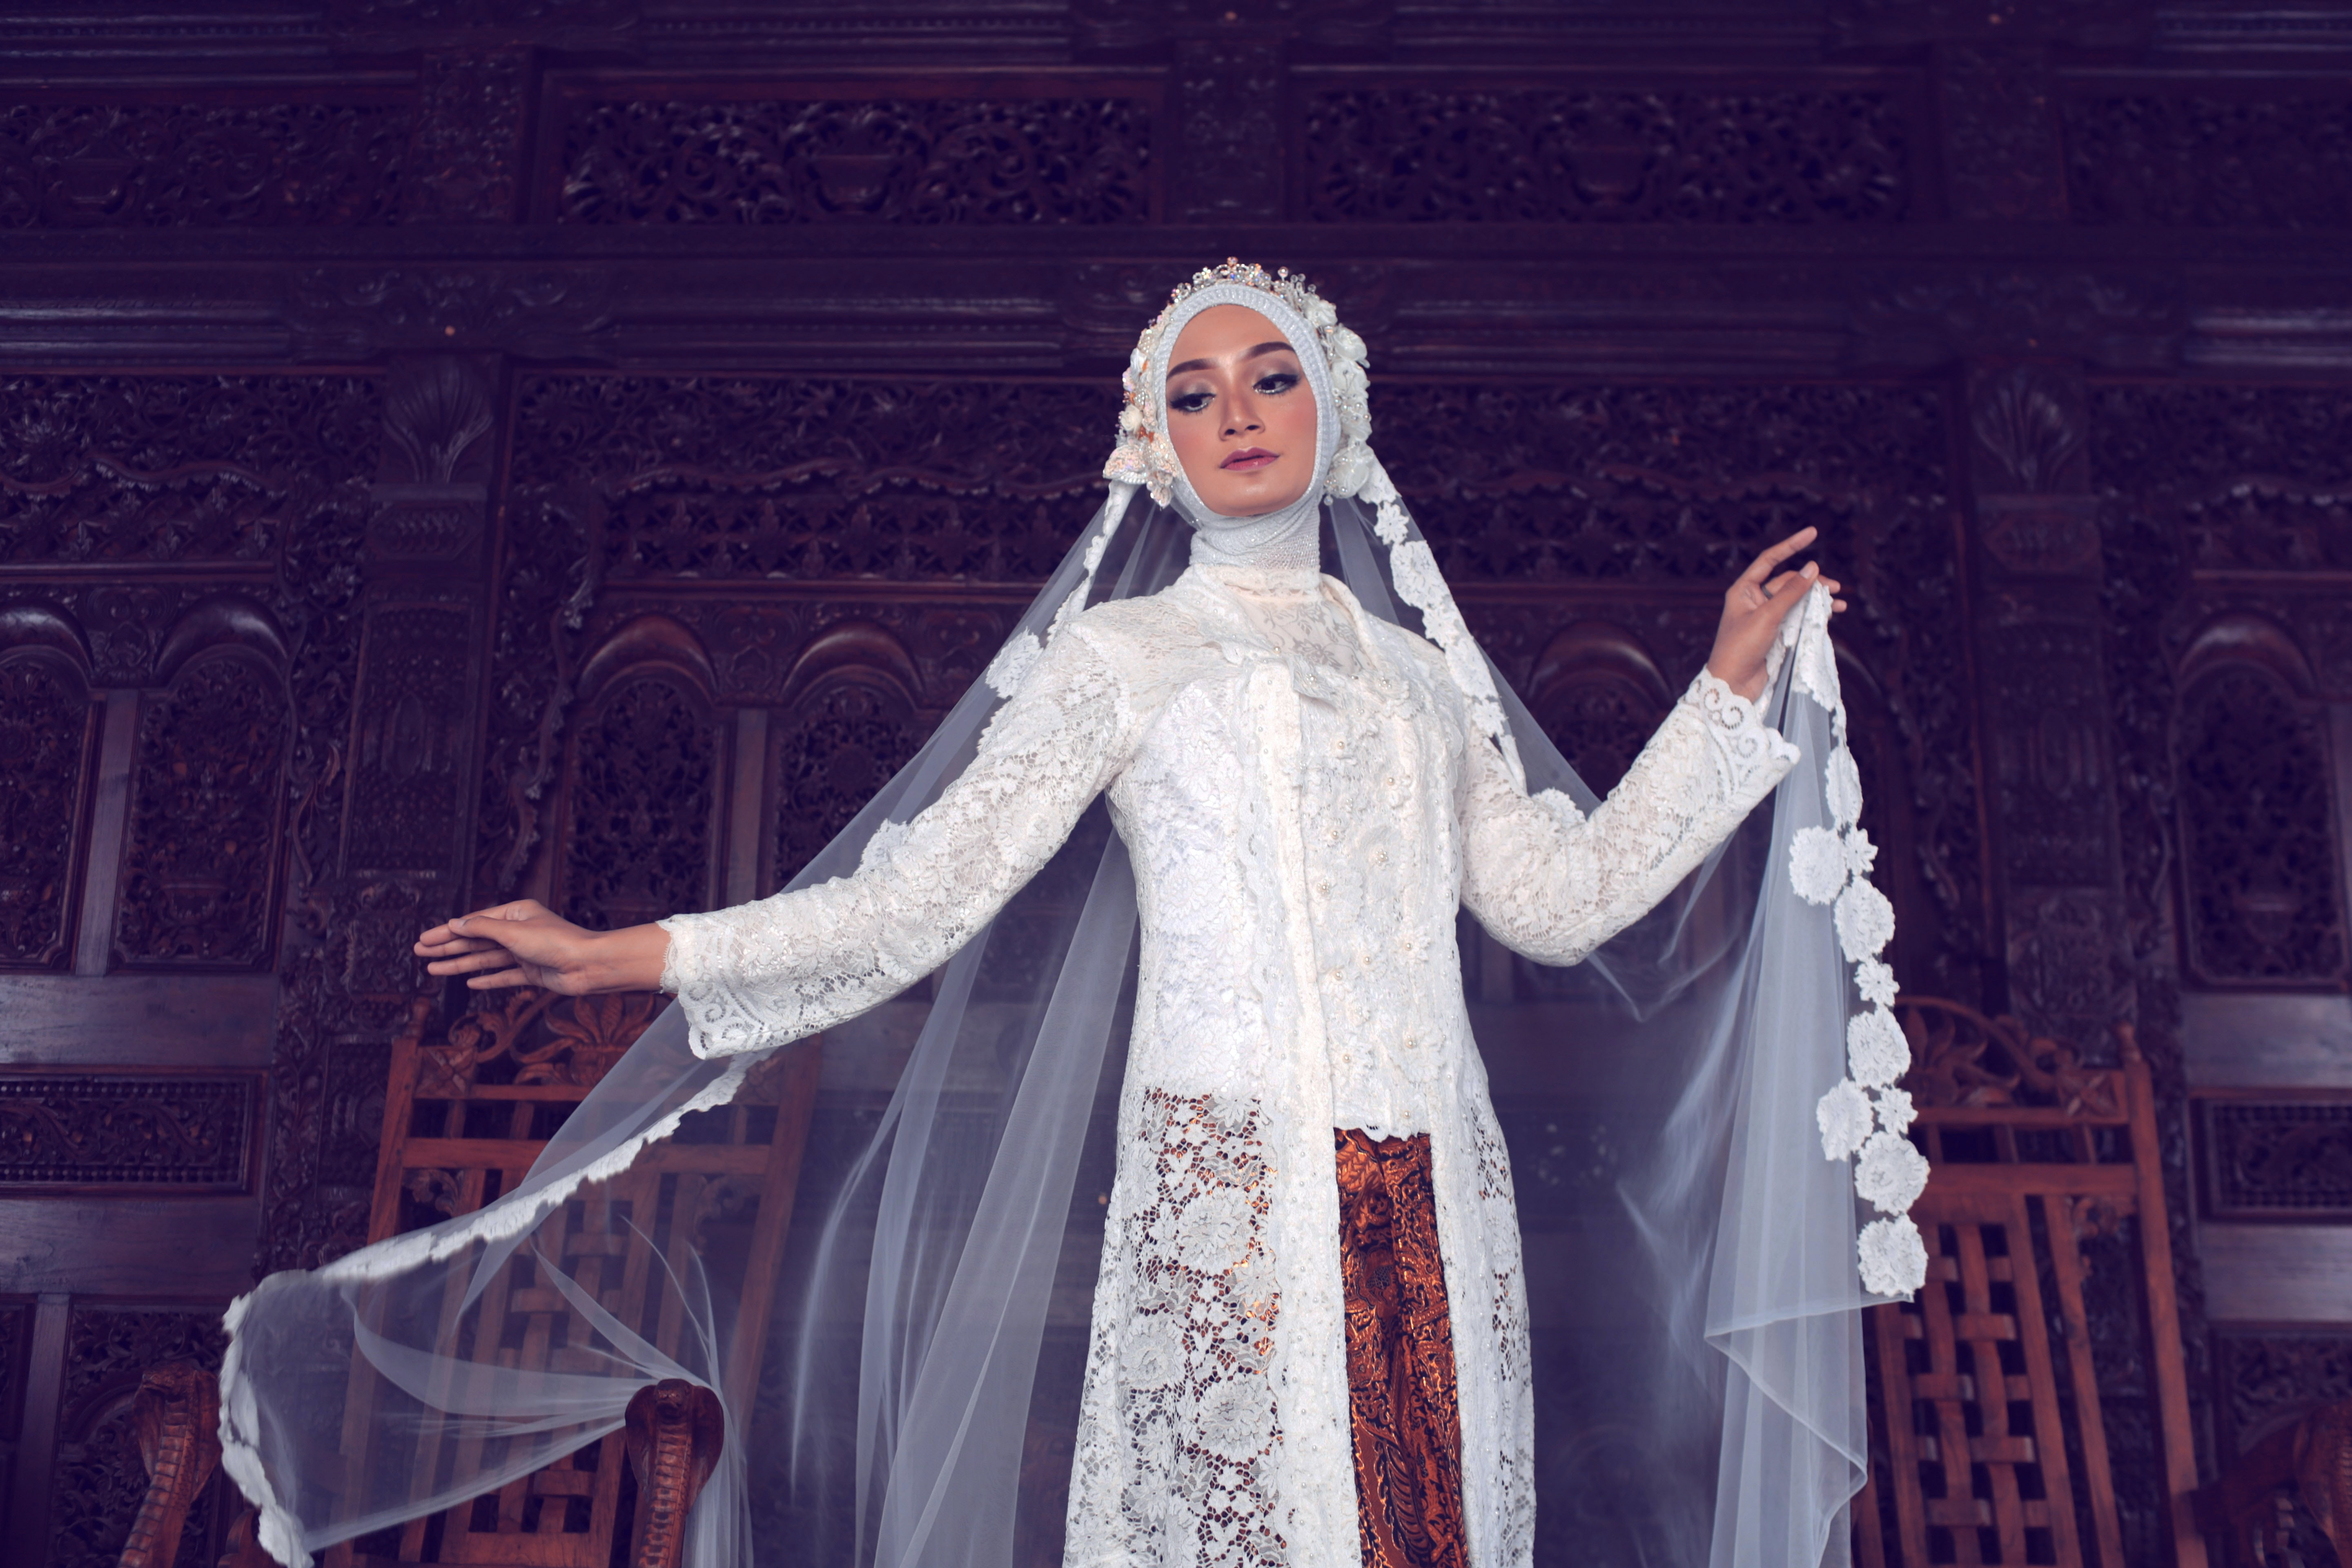 woman wearing white wedding gown with veil